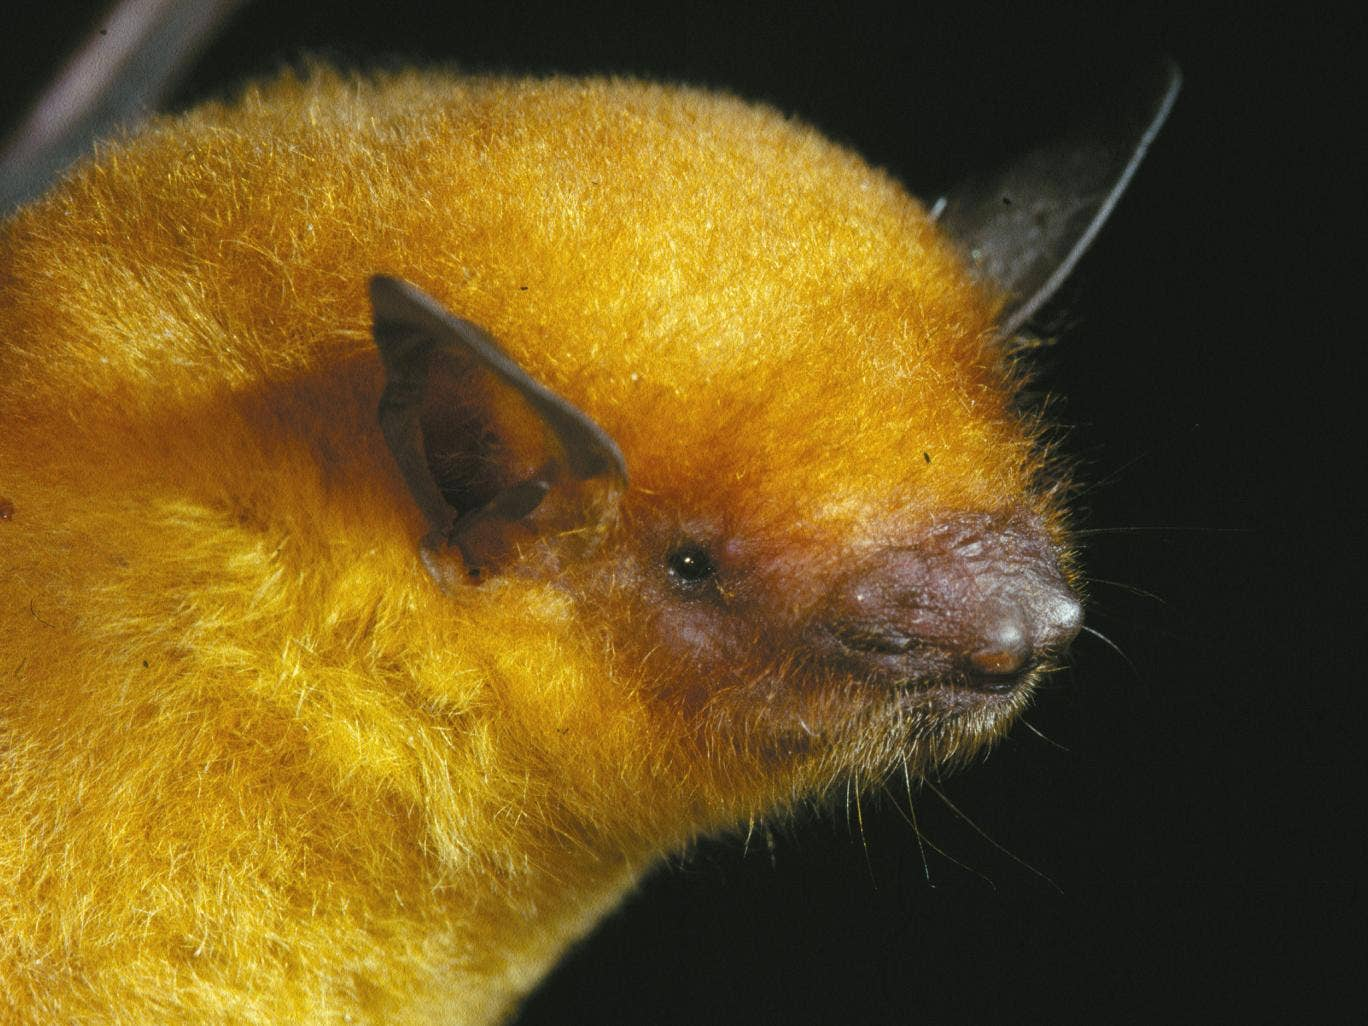 A myotis midastactus bat, which was recently classified as a new species